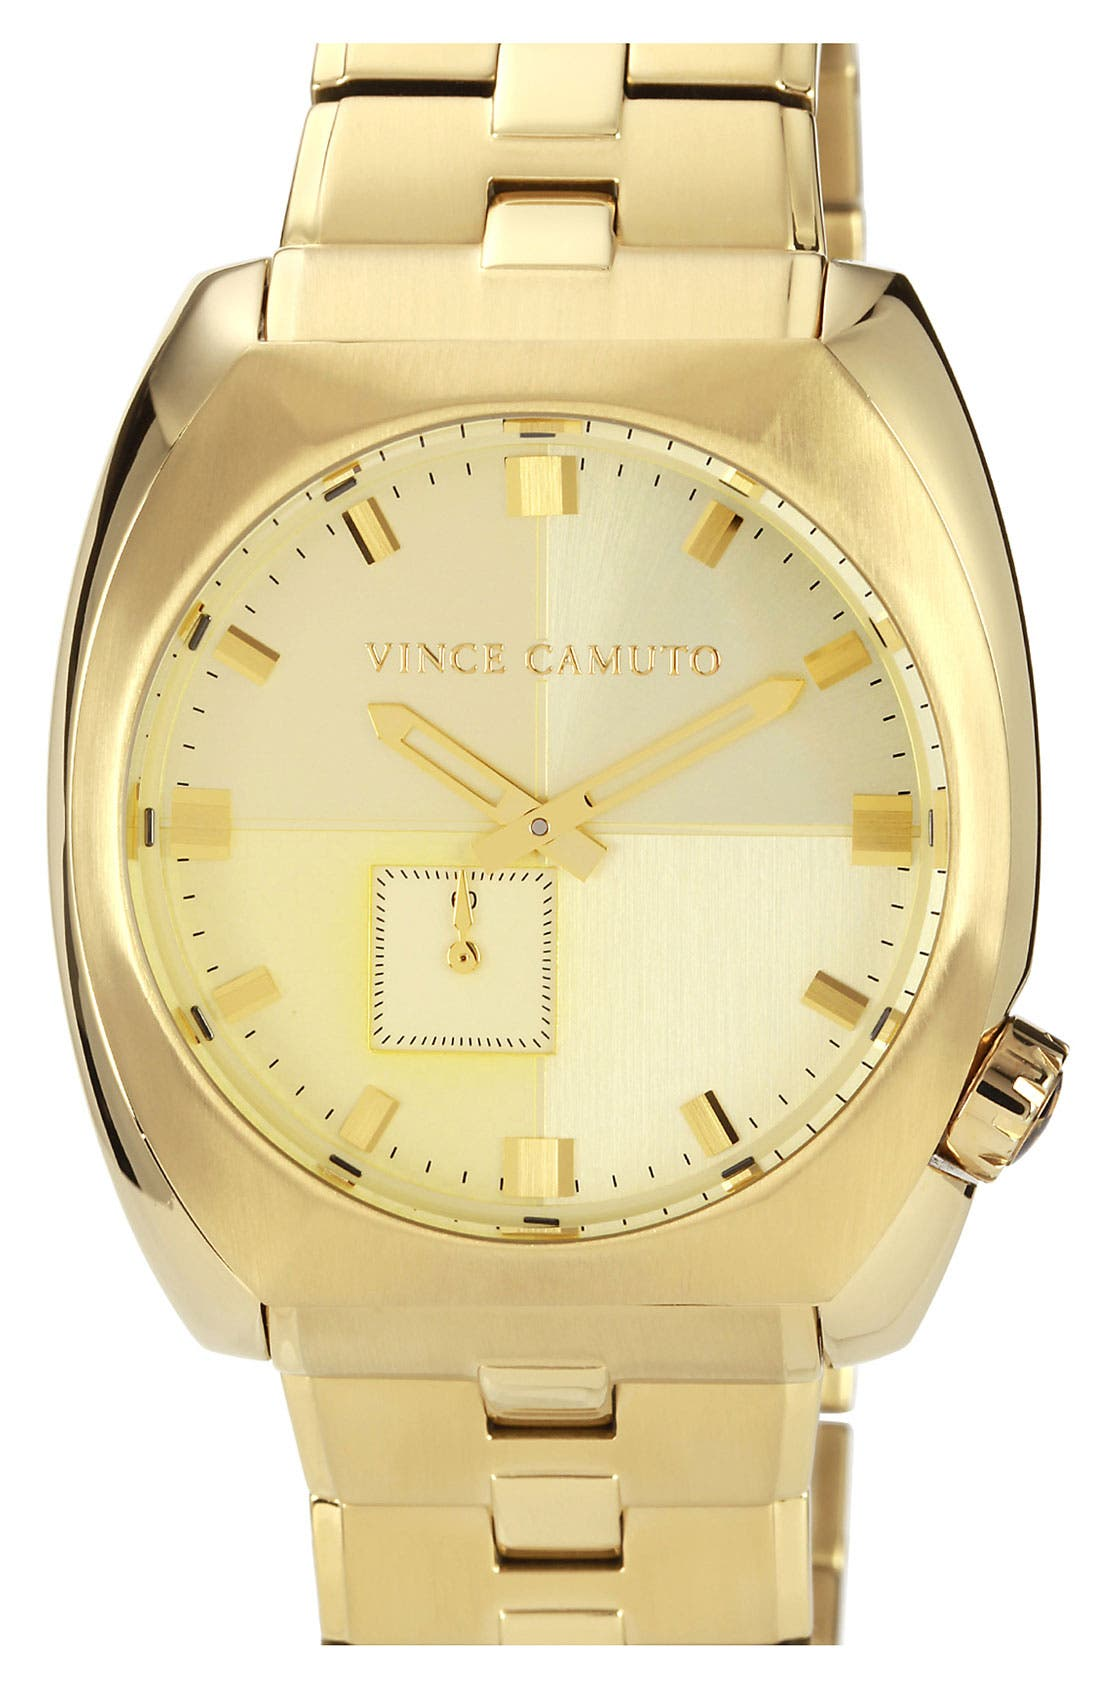 Main Image - Vince Camuto 'Cadet' Bracelet Watch, 43mm x 48mm